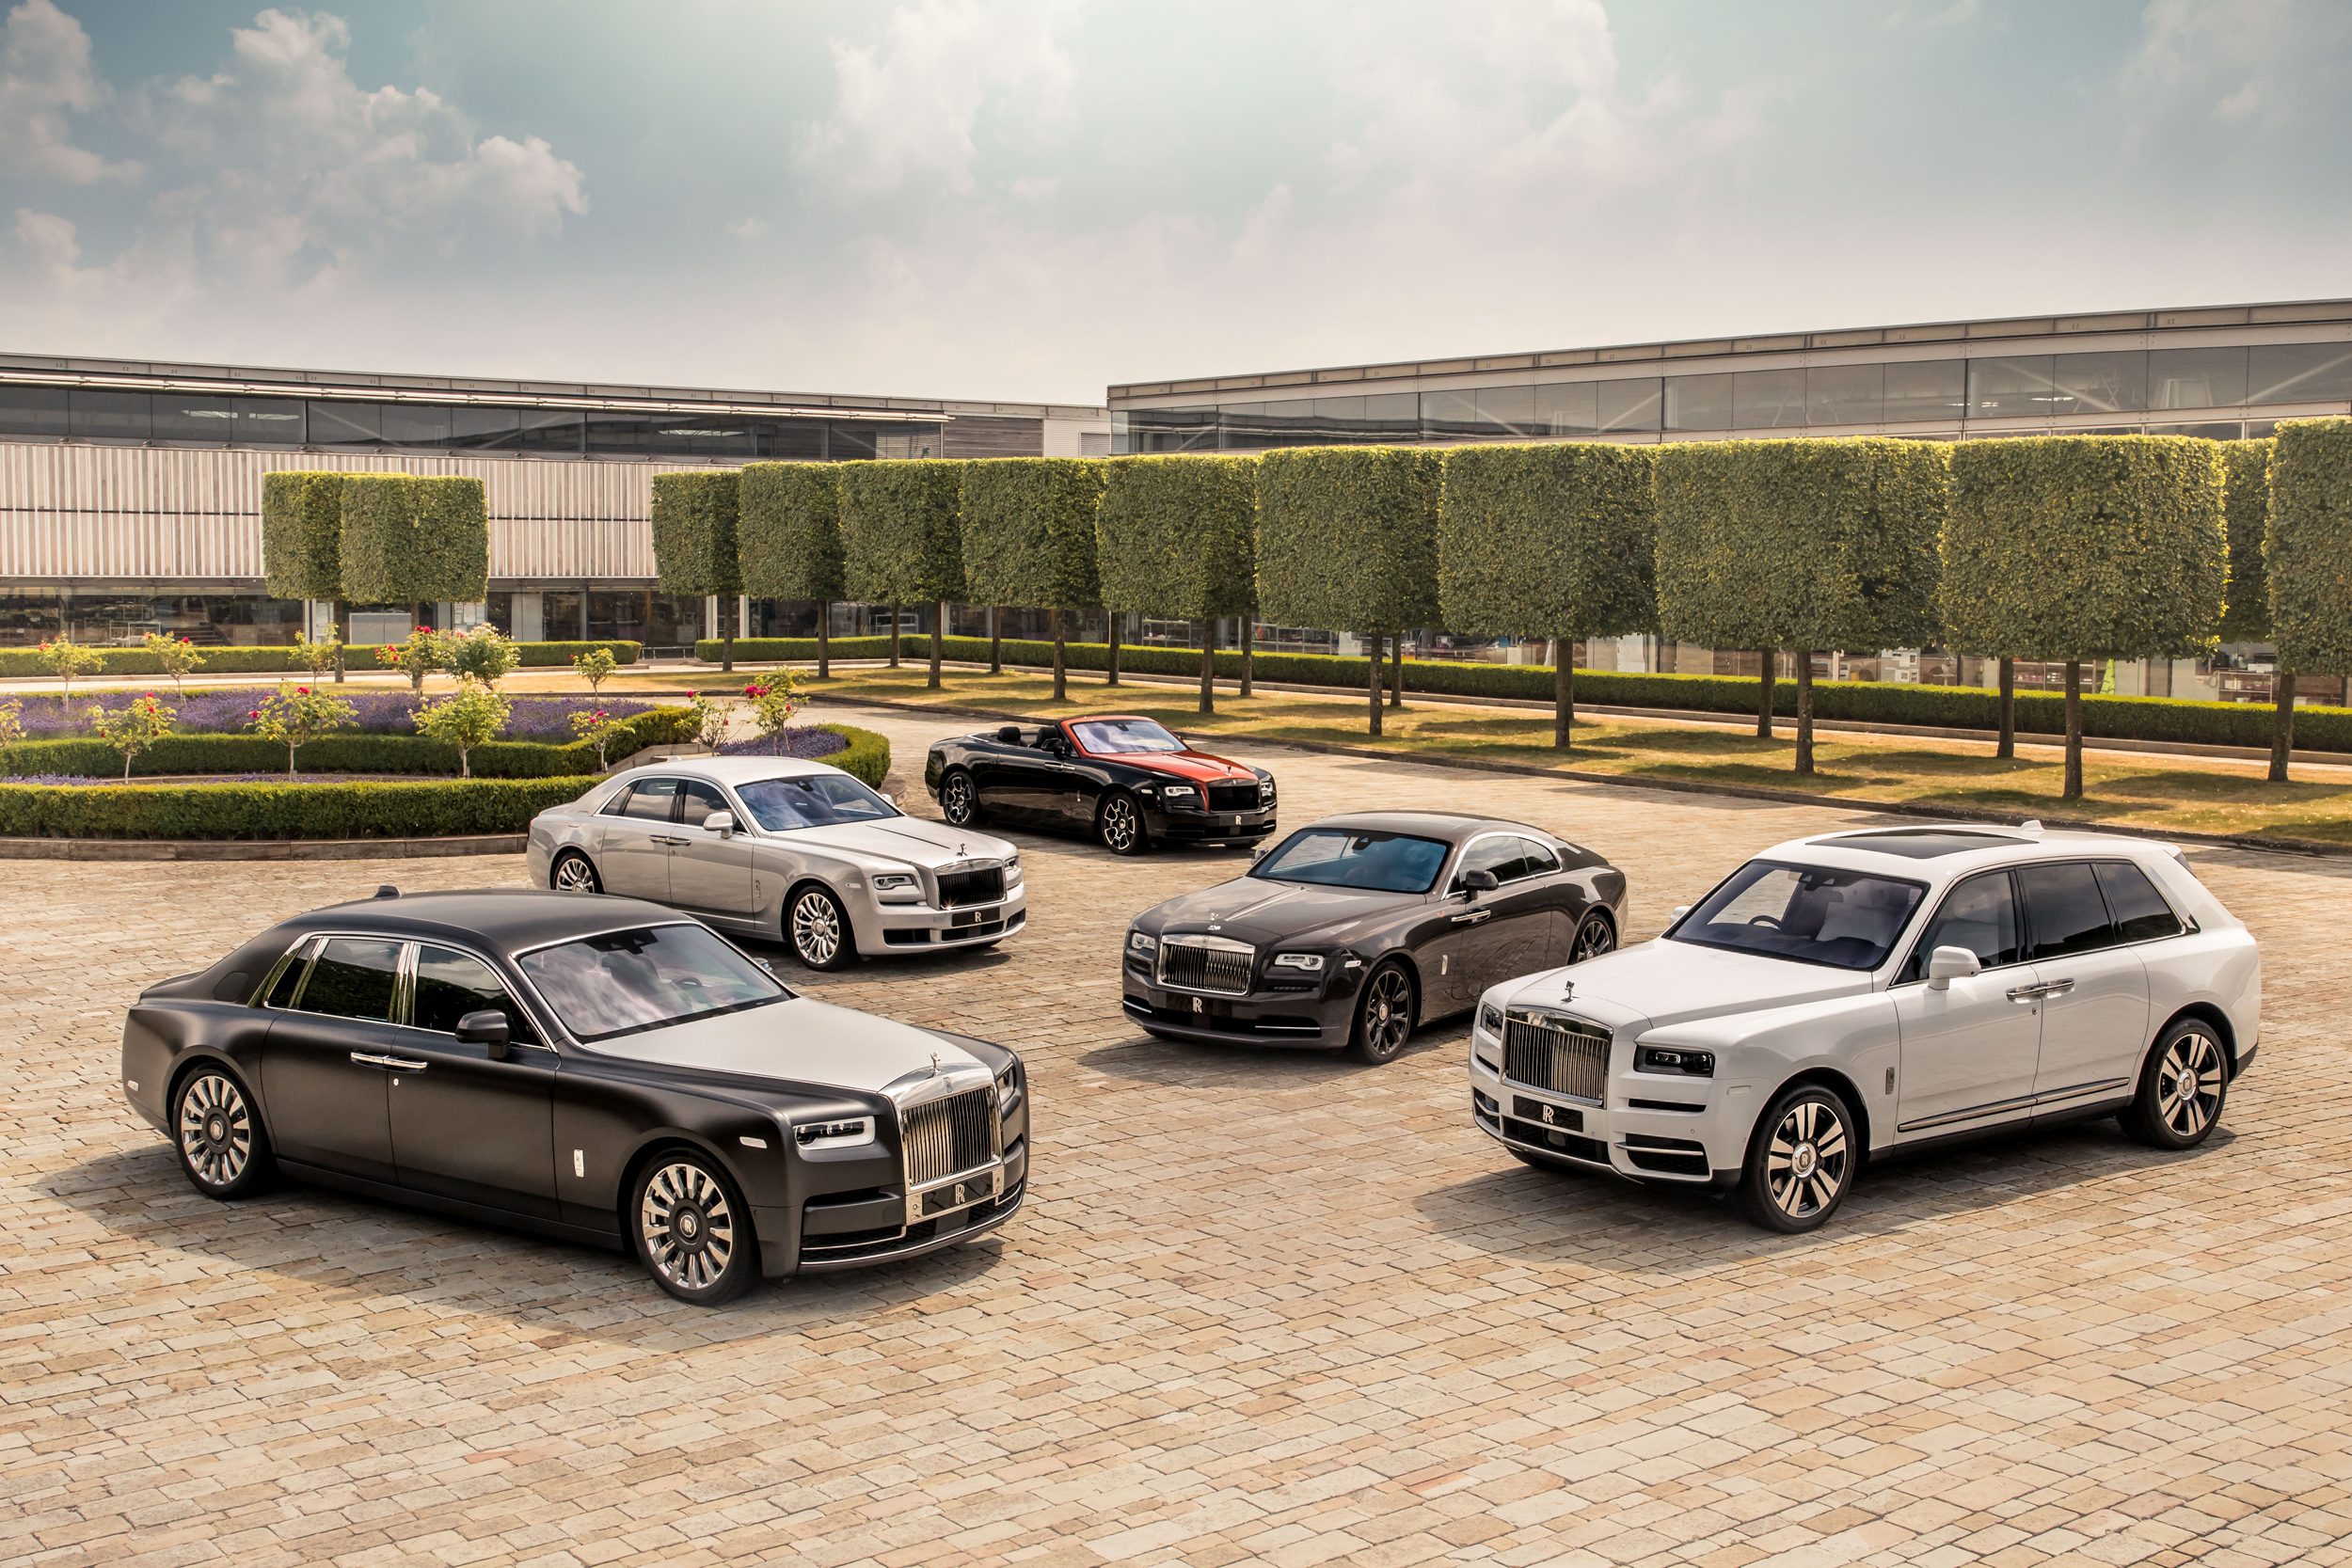 Rolls-Royce Marks 115 Years of Excellence and Innovation - COMPLETE PORTFOLIO OF ROLLS-ROYCE MOTOR CARS